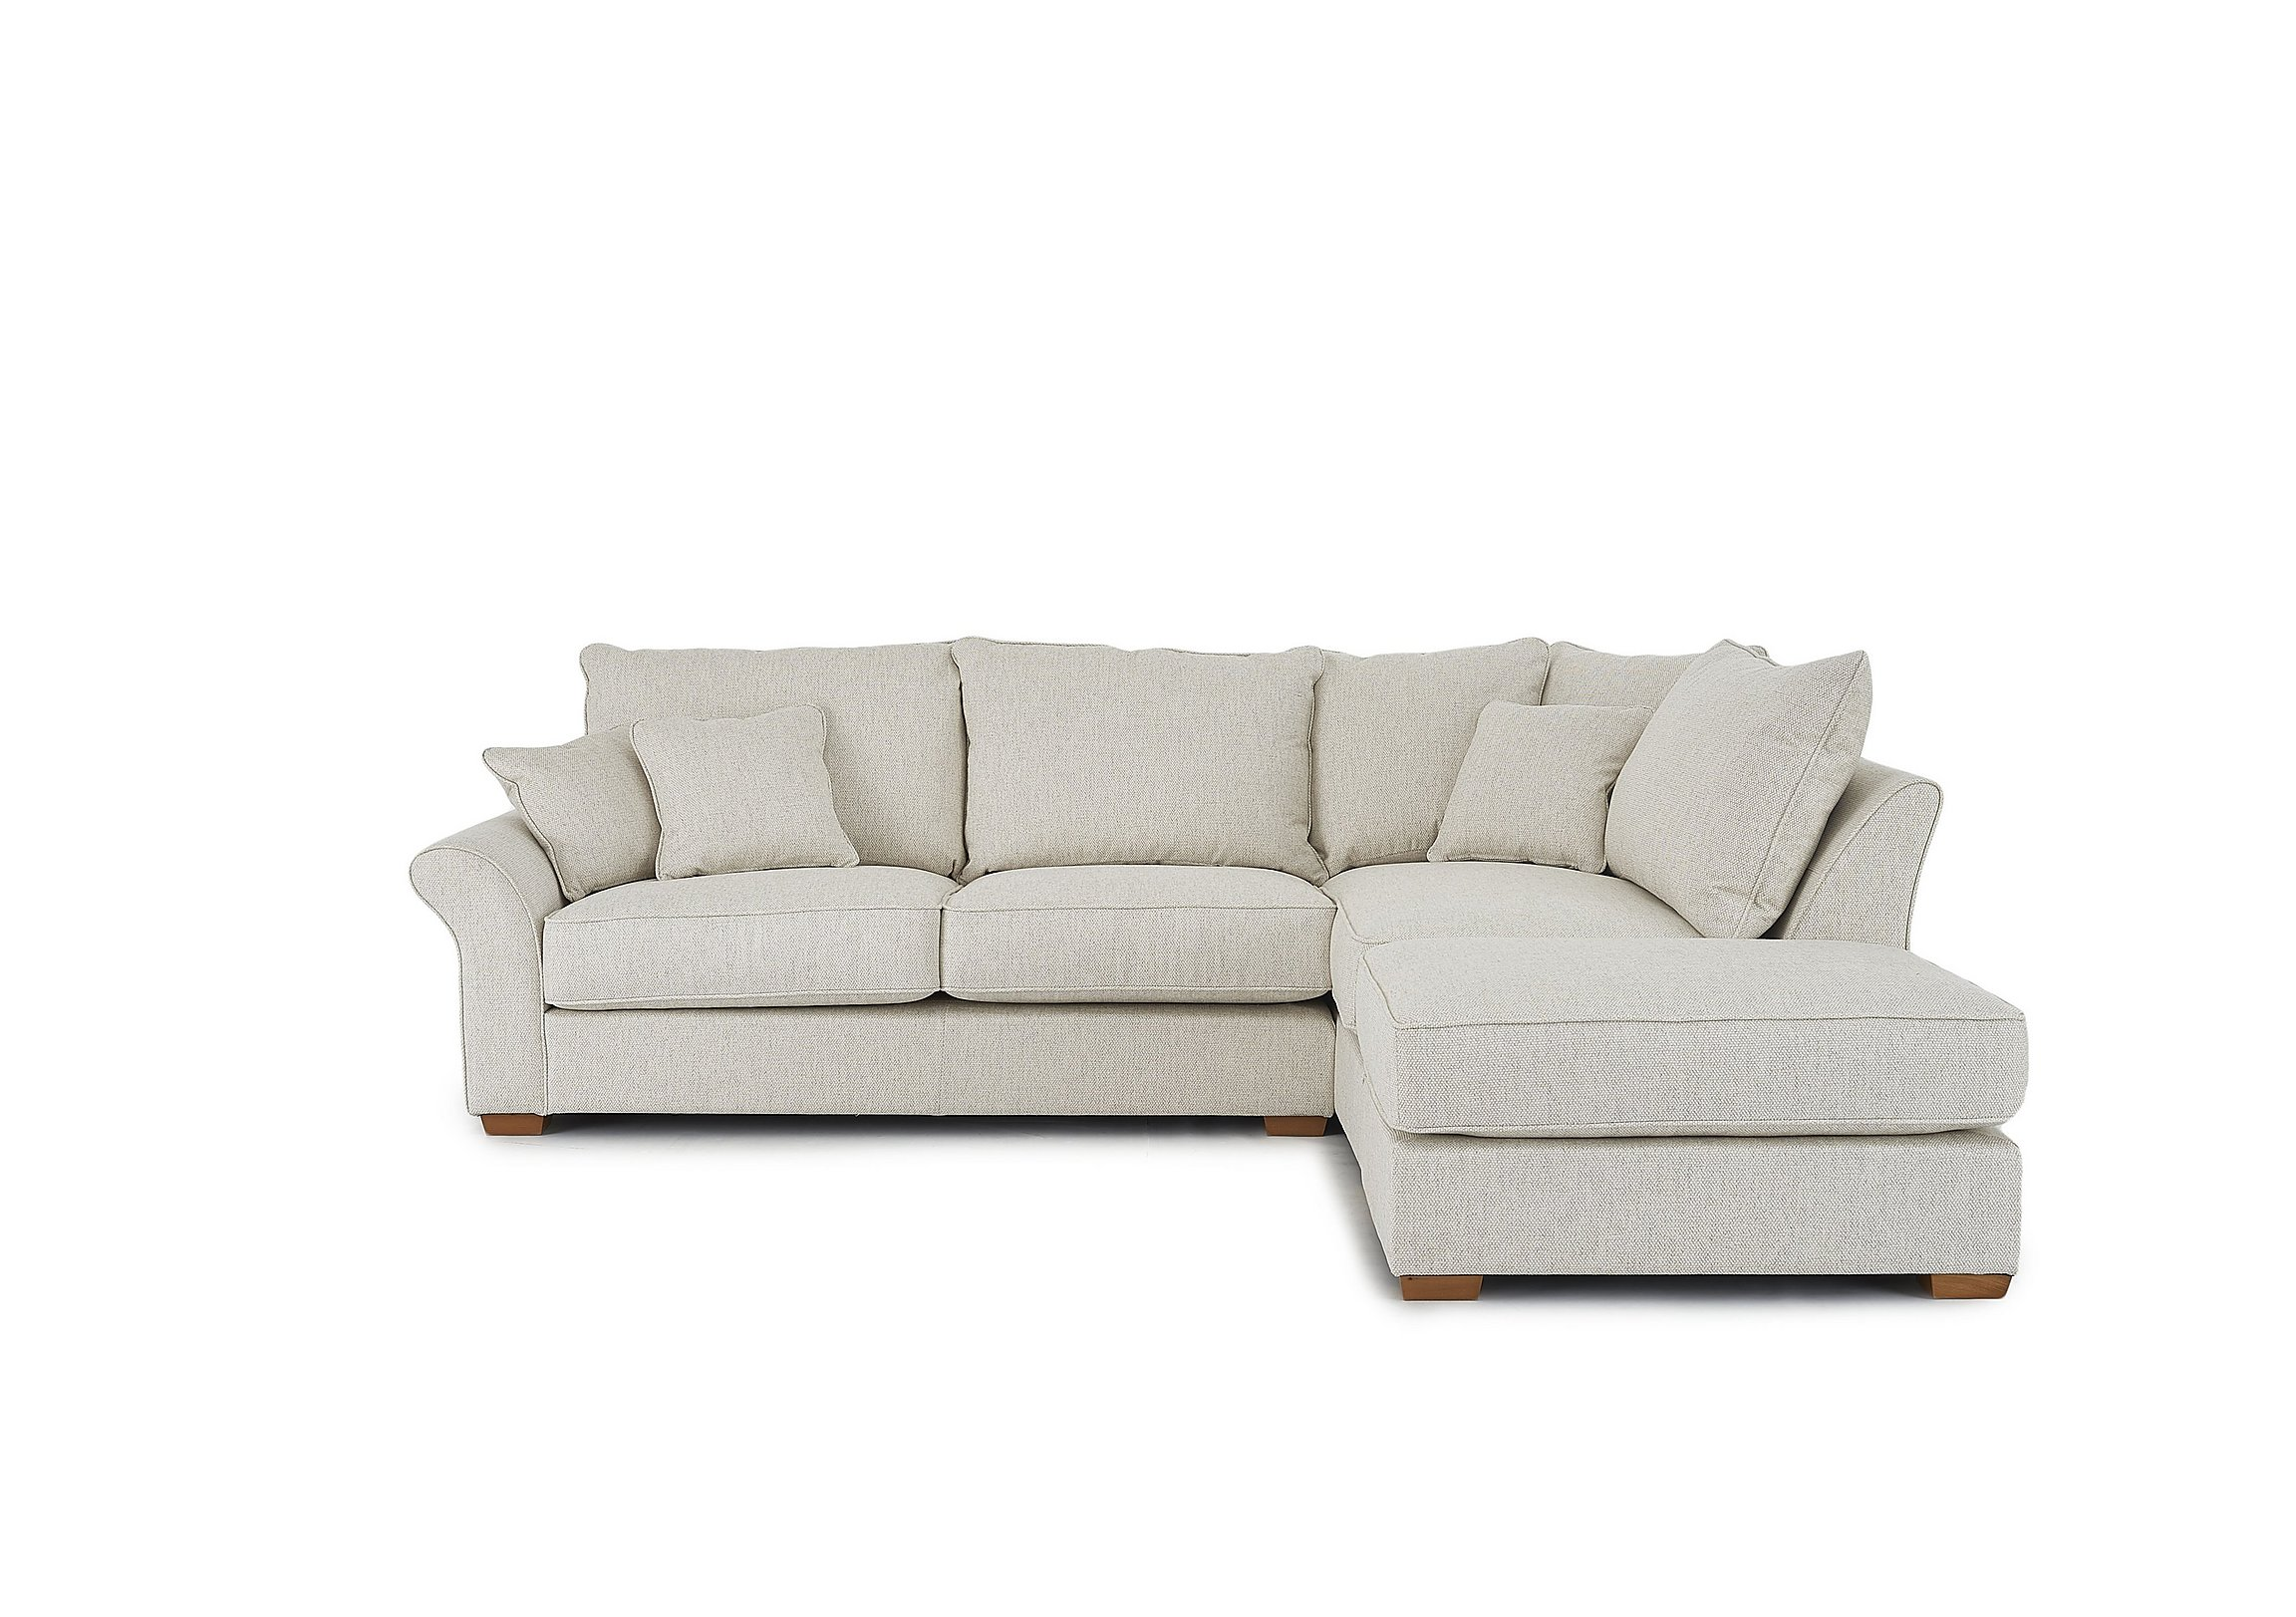 Carnaby Corner Chaise Fabric Sofa with Footstool - Furniture Village